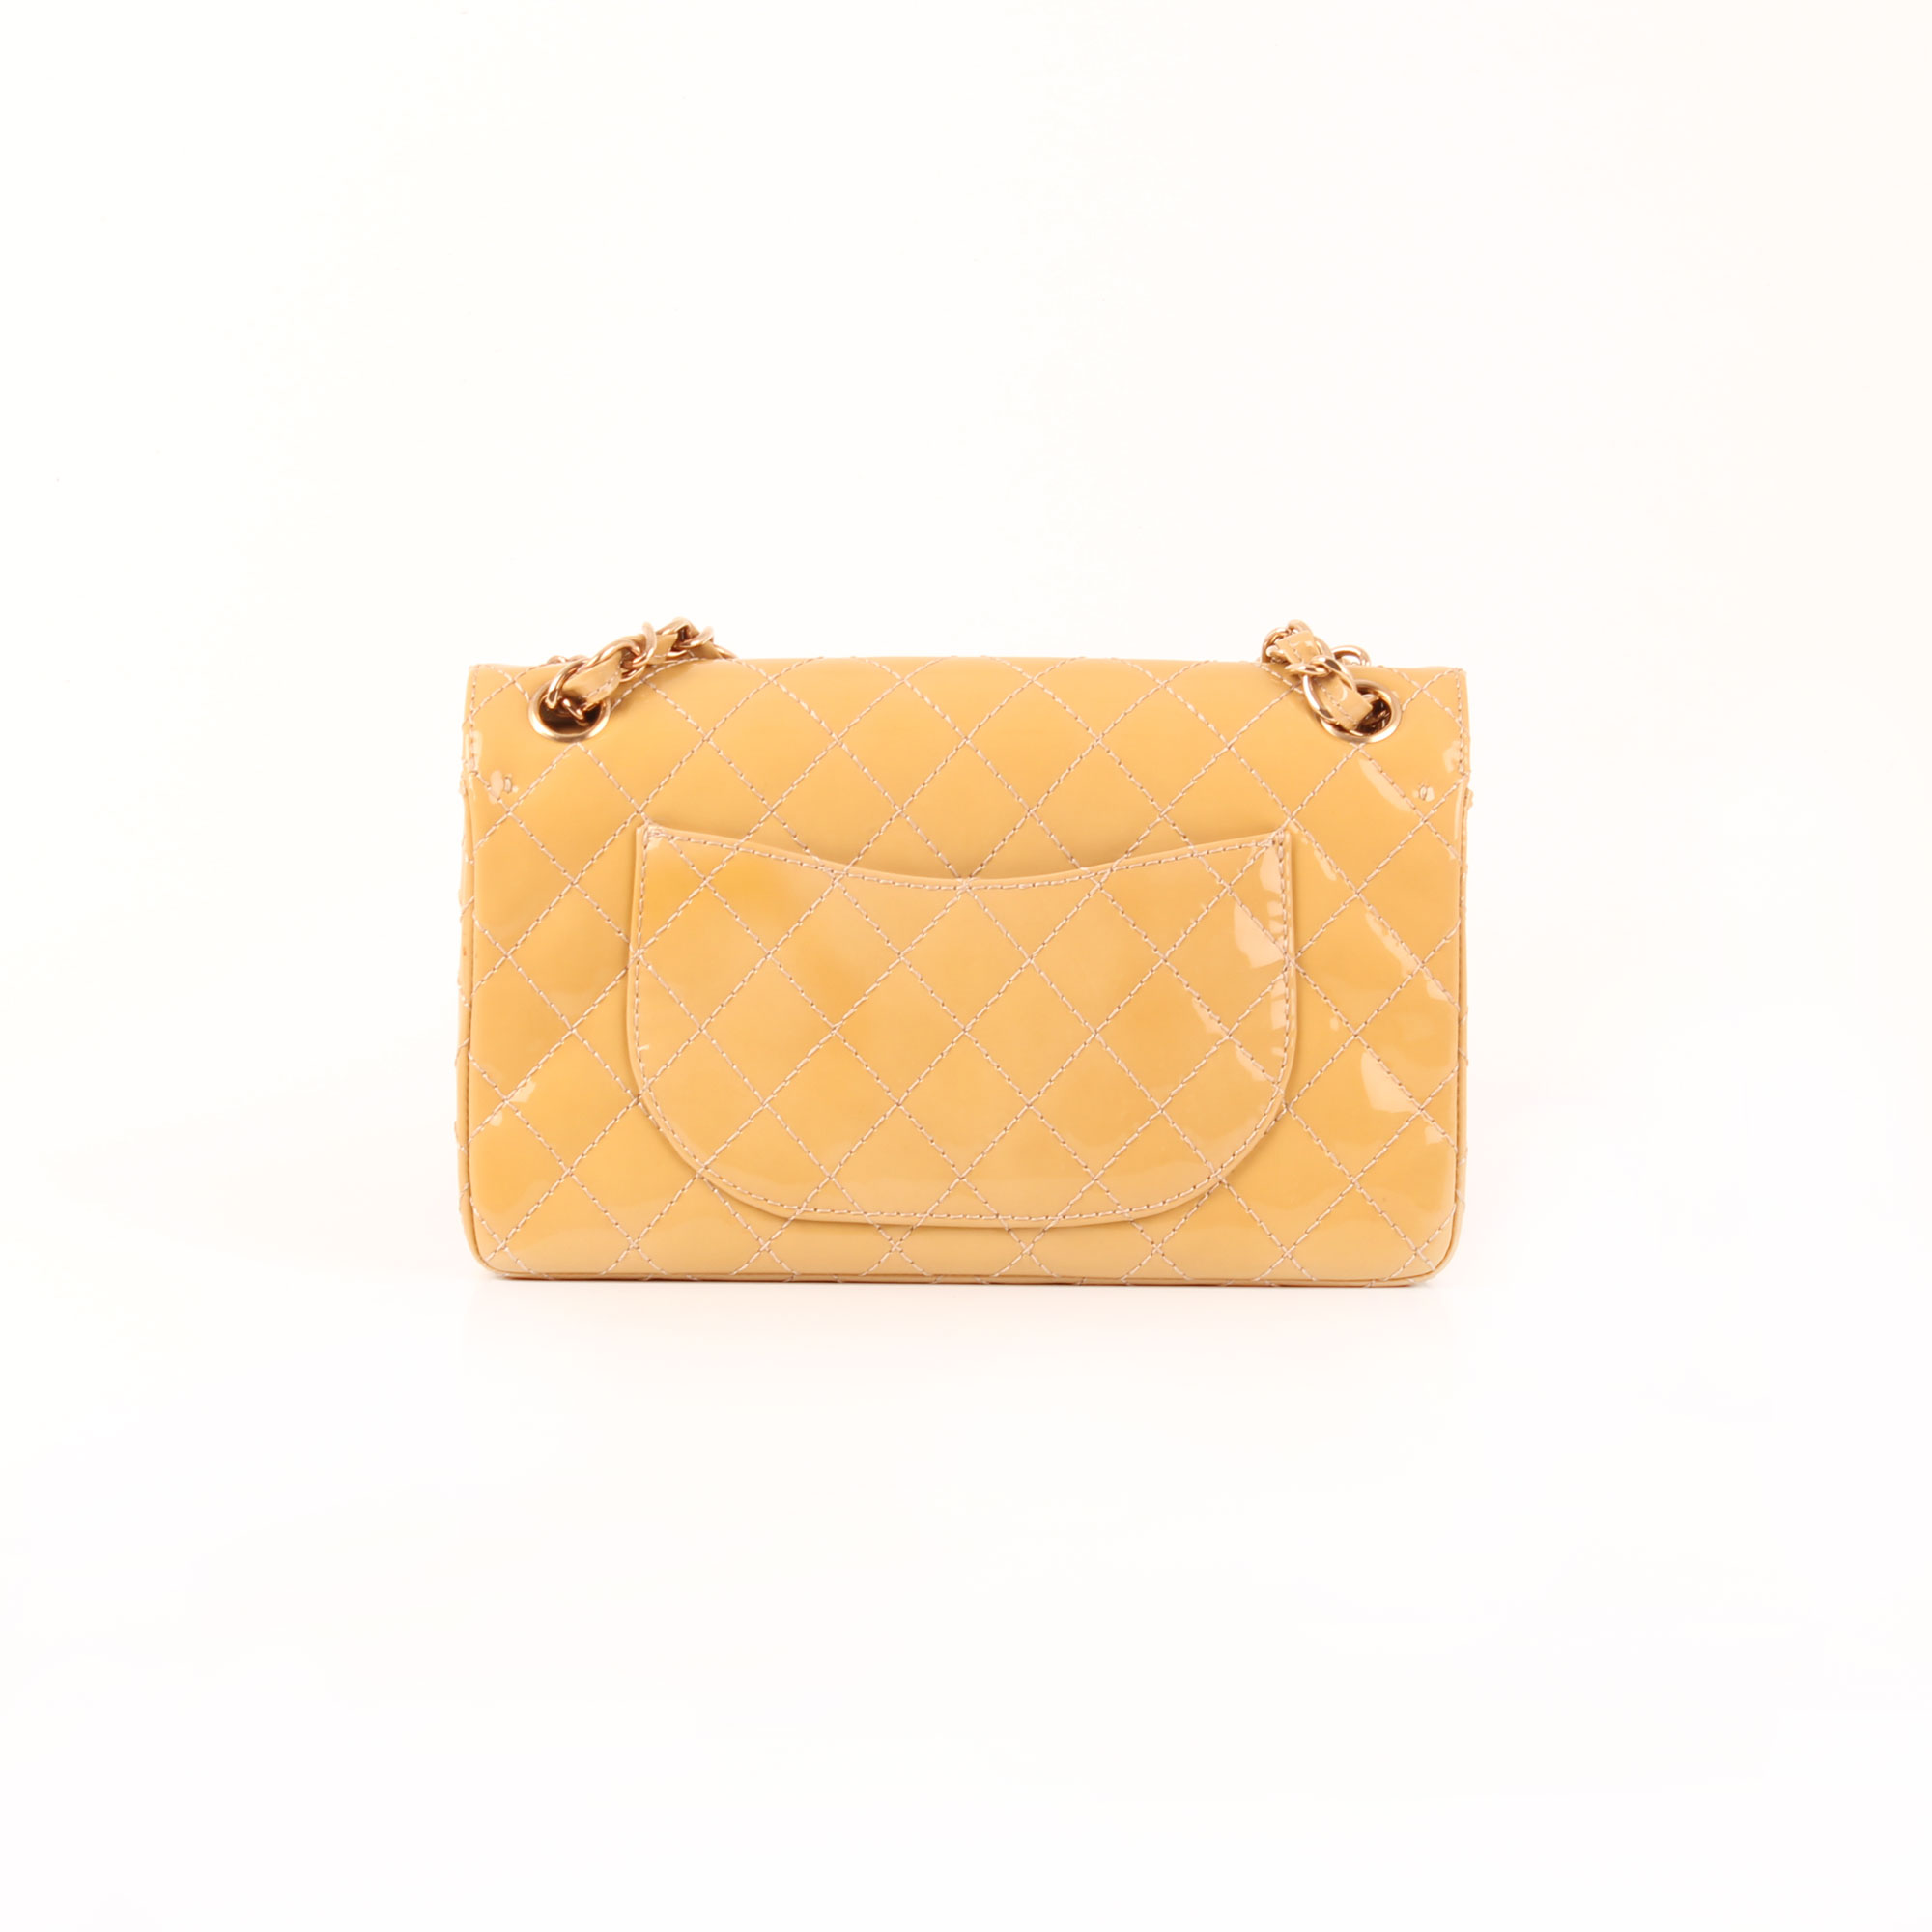 d6dd5801a4d5c2 Imagen trasera del bolso chanel timeless double flap bag charol amarillo  mostaza 2.55